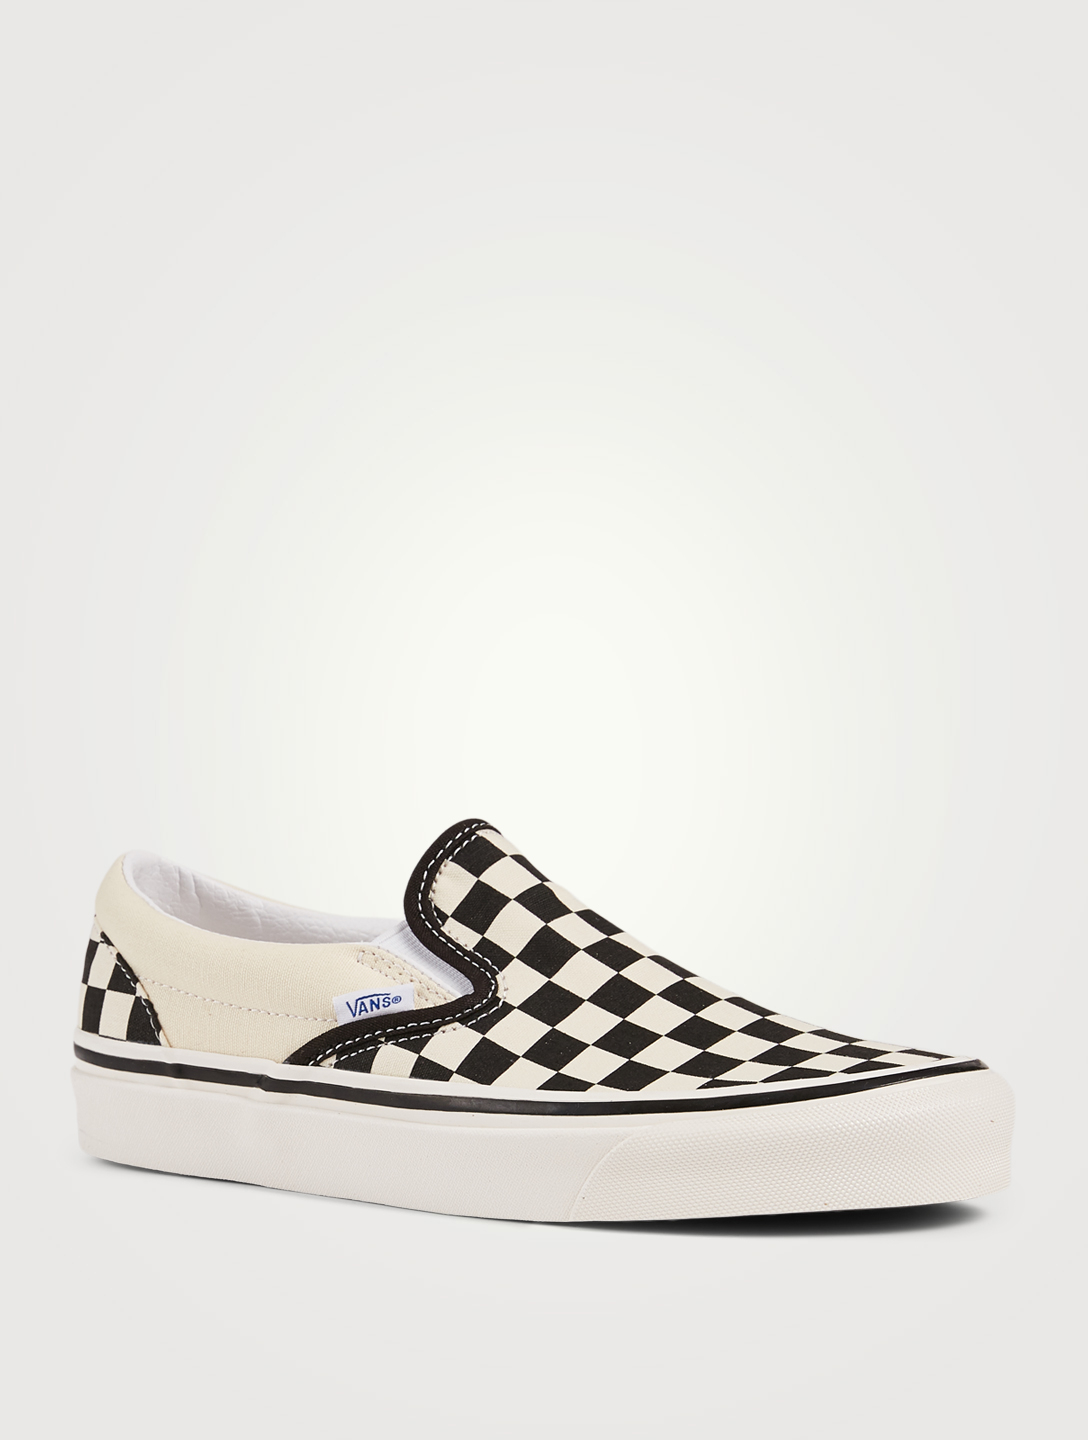 VANS Anaheim Factory Classic Slip-On 98 DX Canvas Sneakers In Checker Print Women's Multi